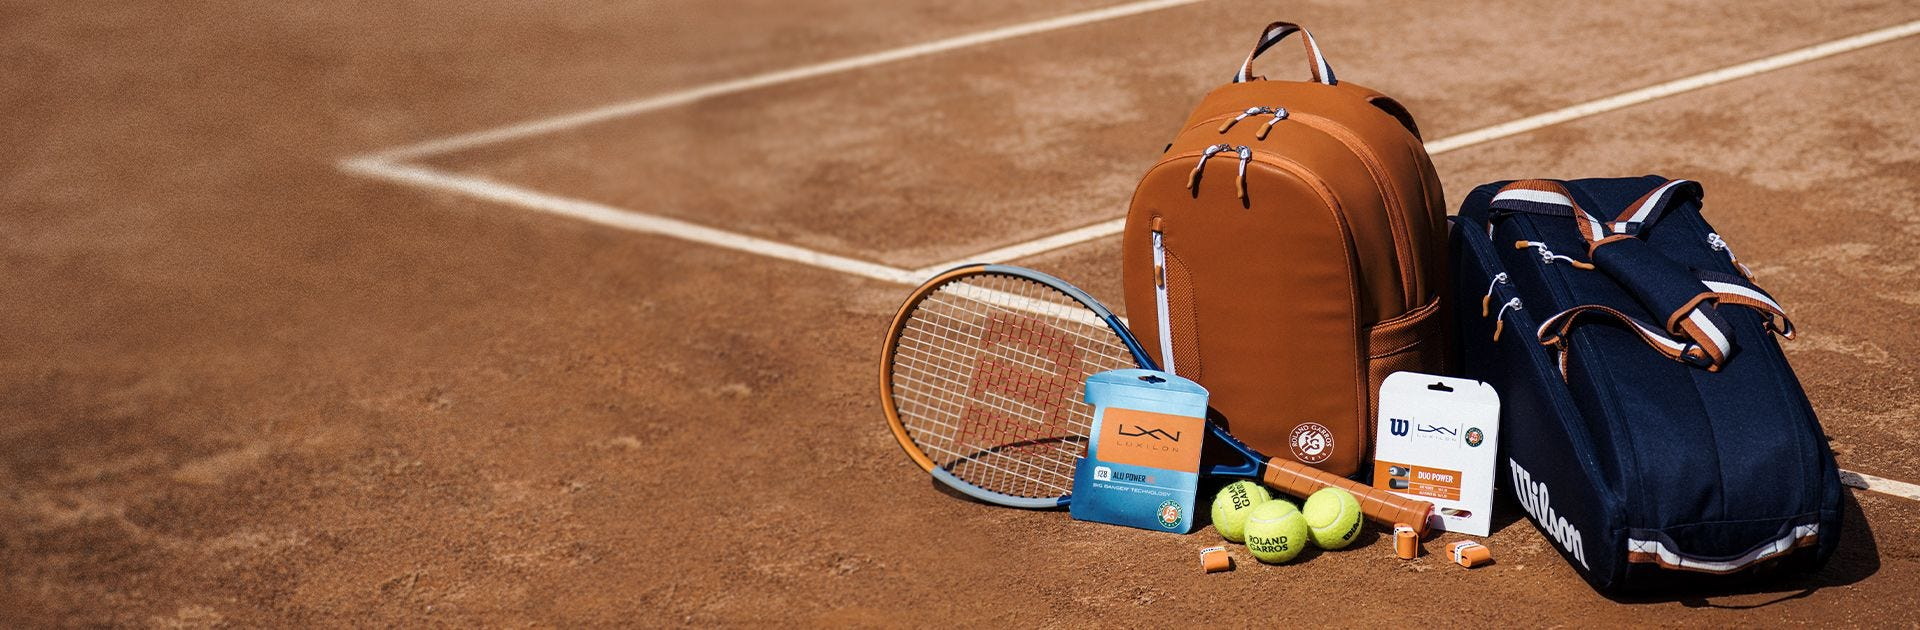 Roland Garros Collection items on a tennis court